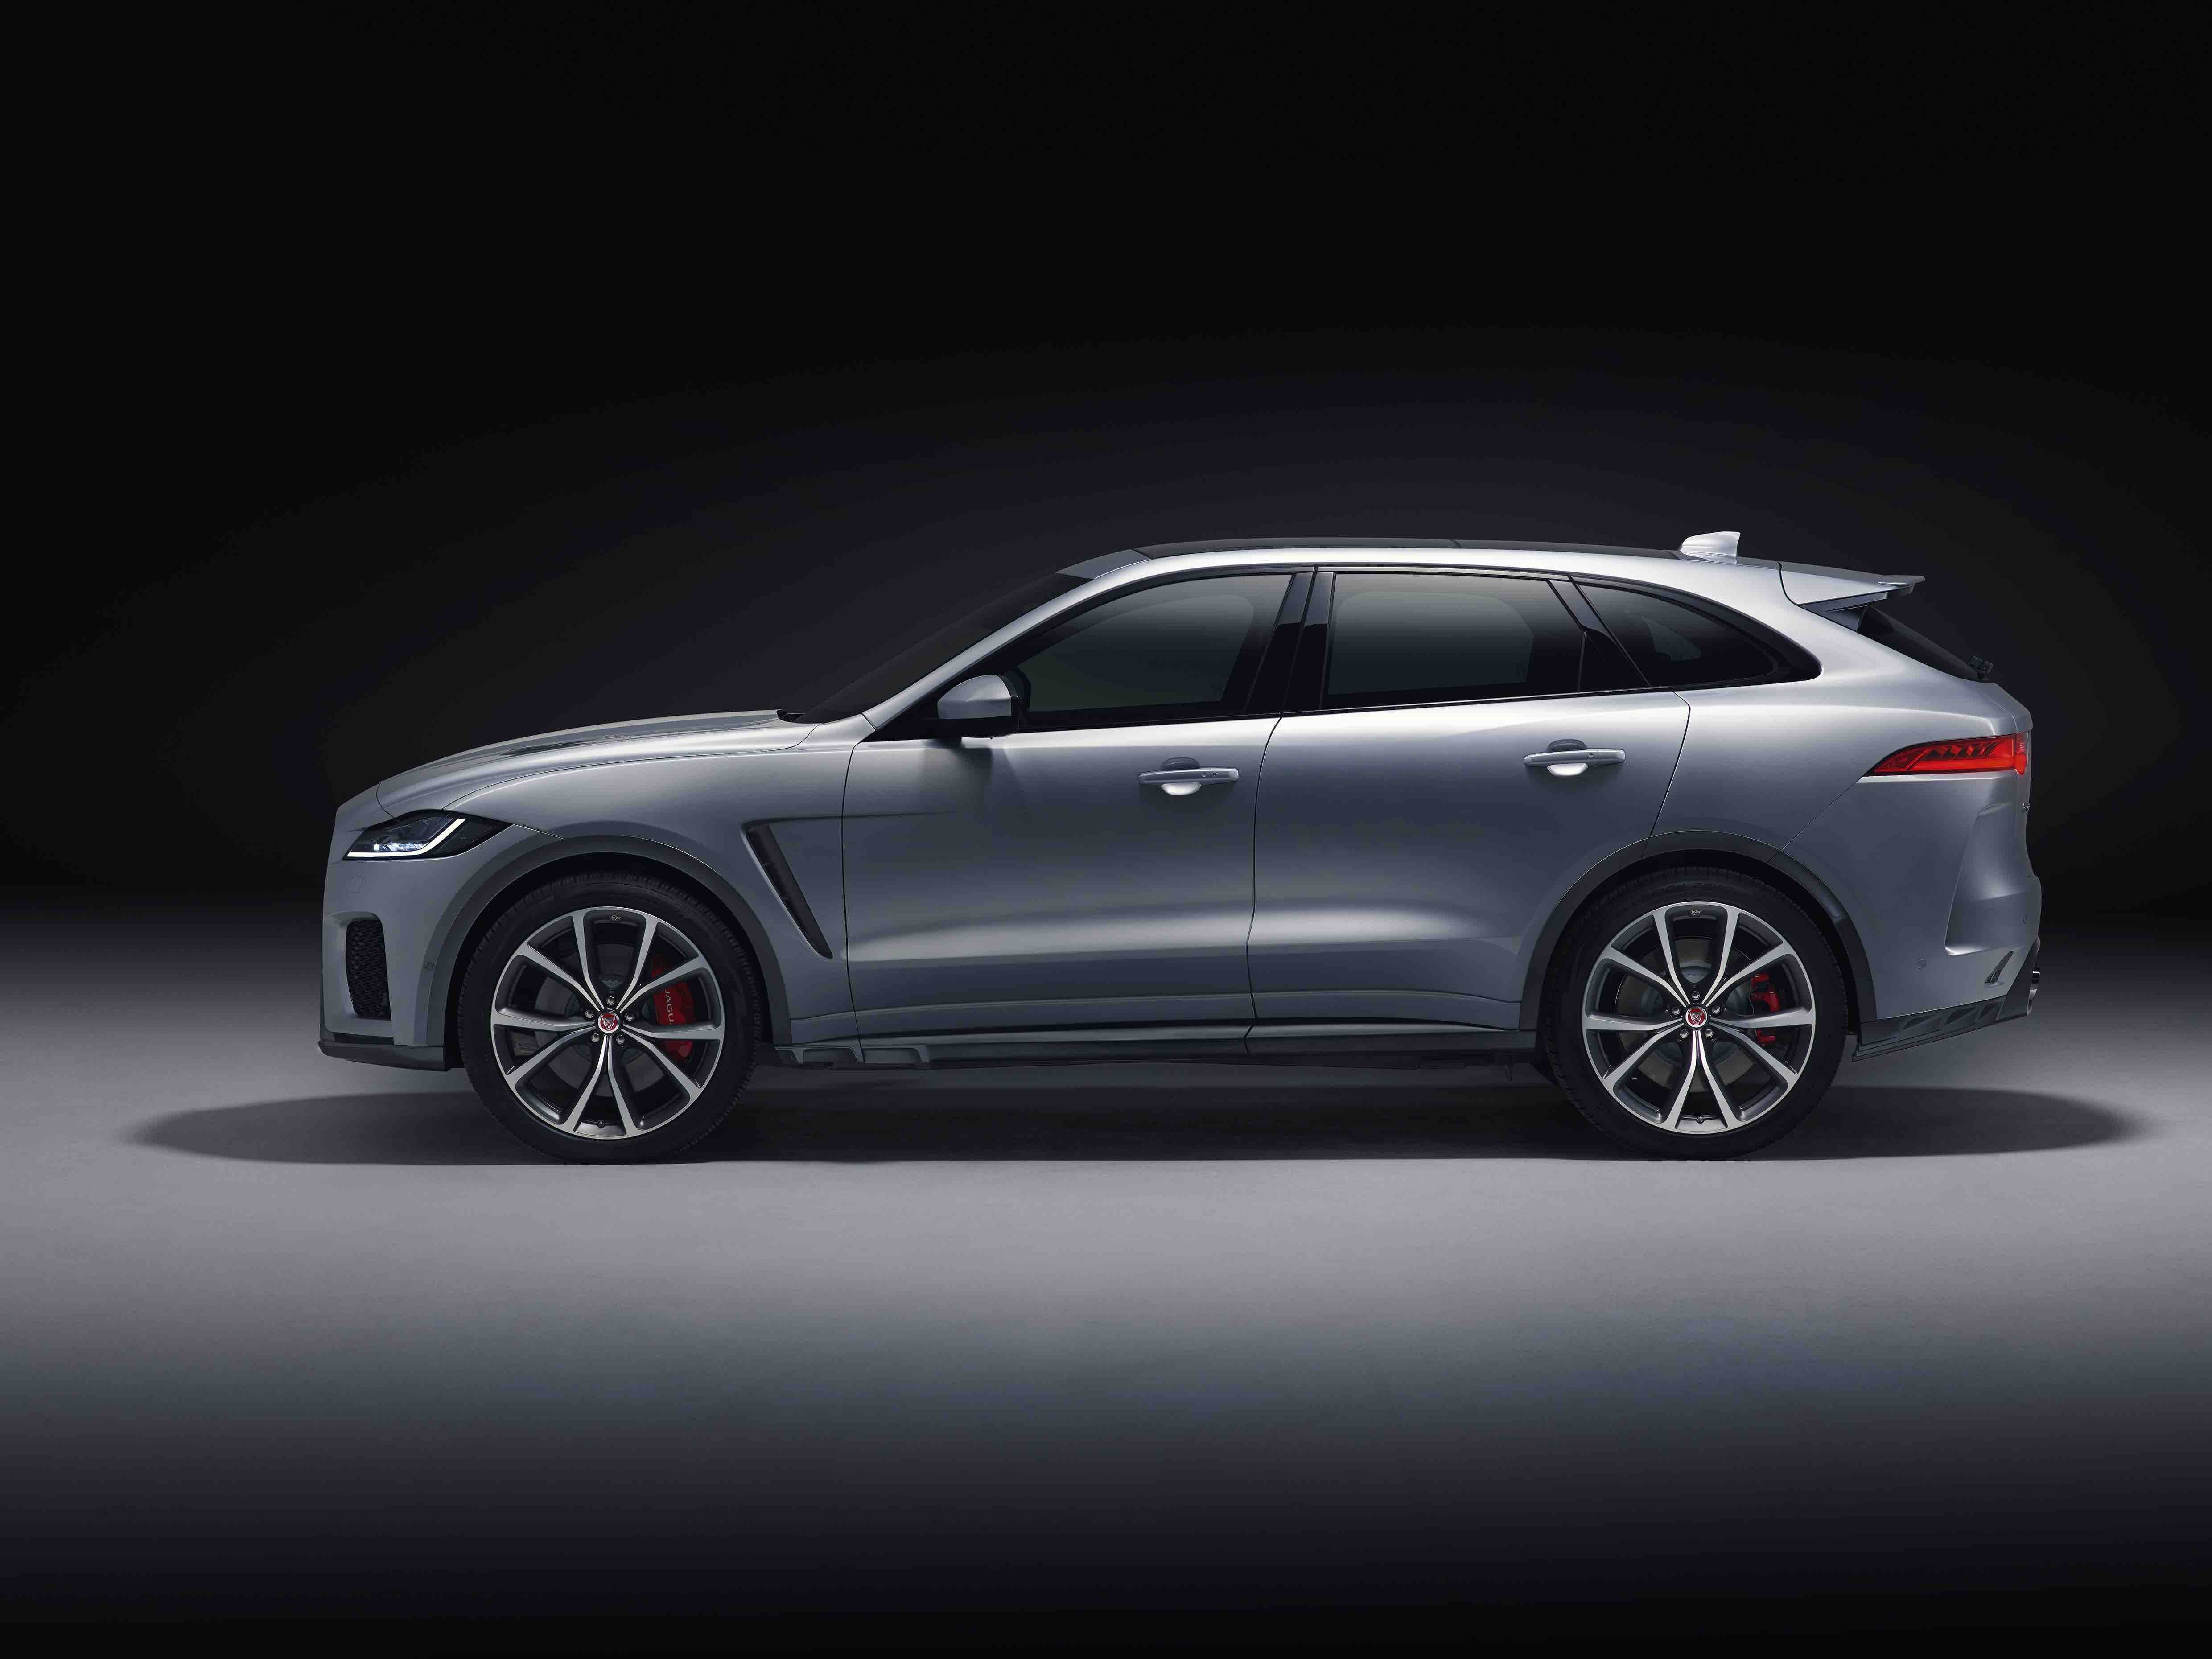 21 All New Jaguar F Pace Svr 2020 Release Date And Concept